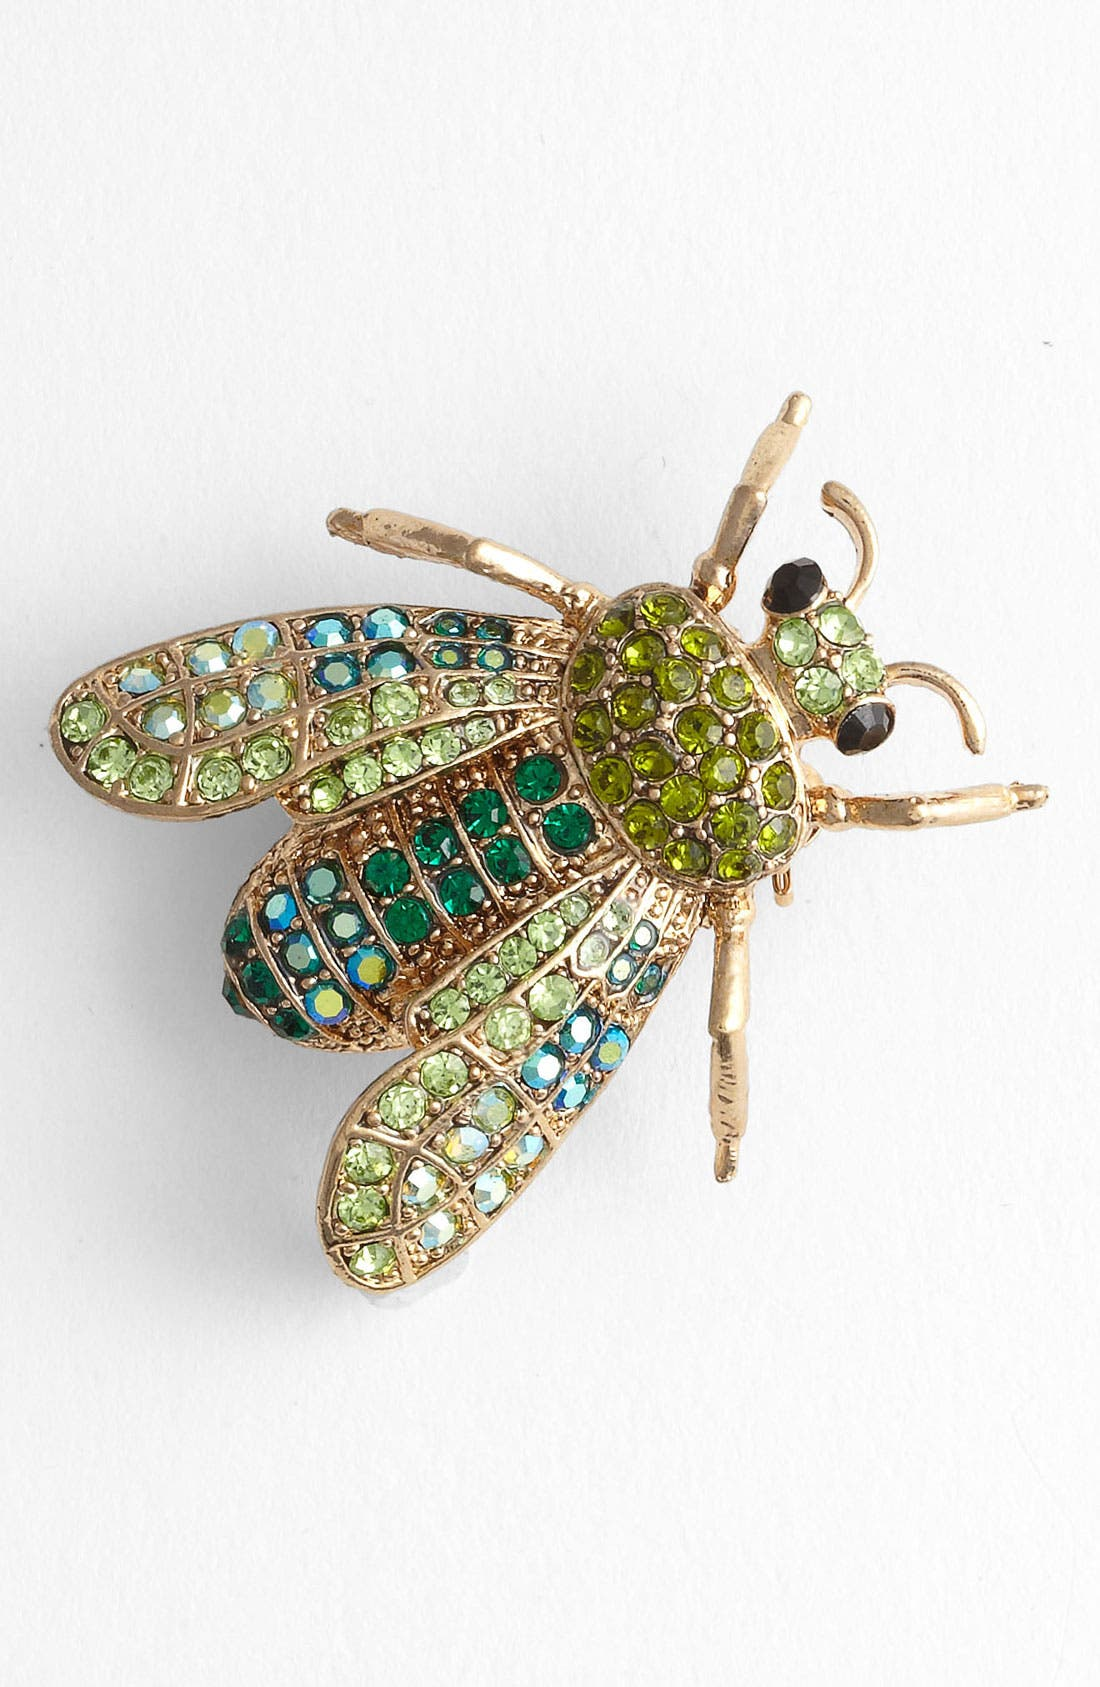 Alternate Image 1 Selected - Tasha 'Critters' Fly Brooch